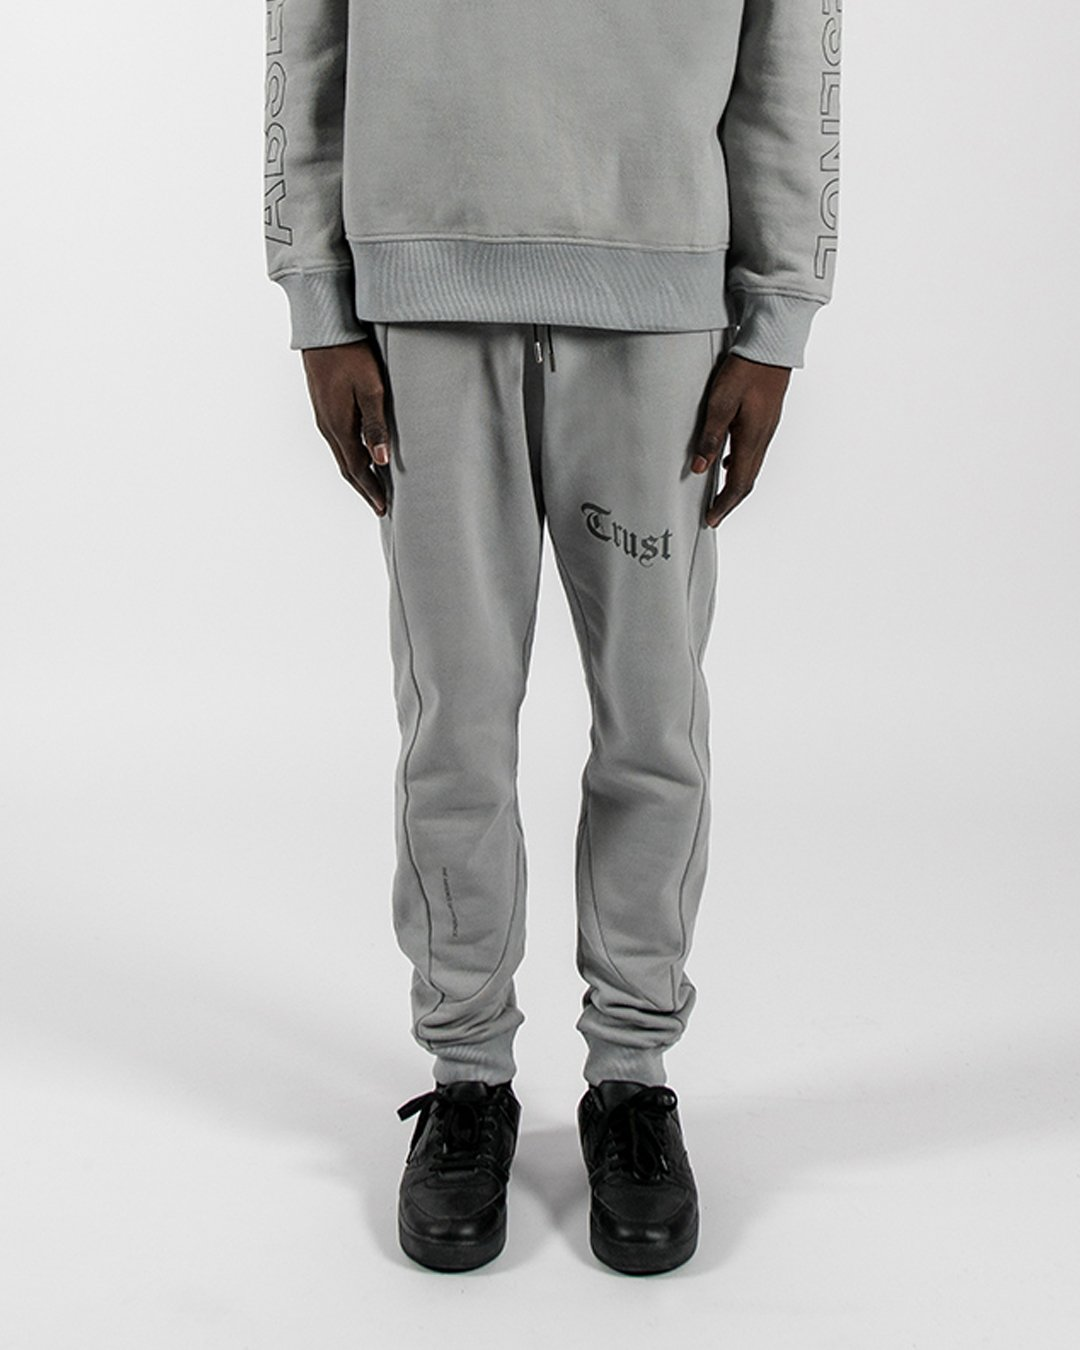 Grey reflective pants cover TRUST Amsterdam